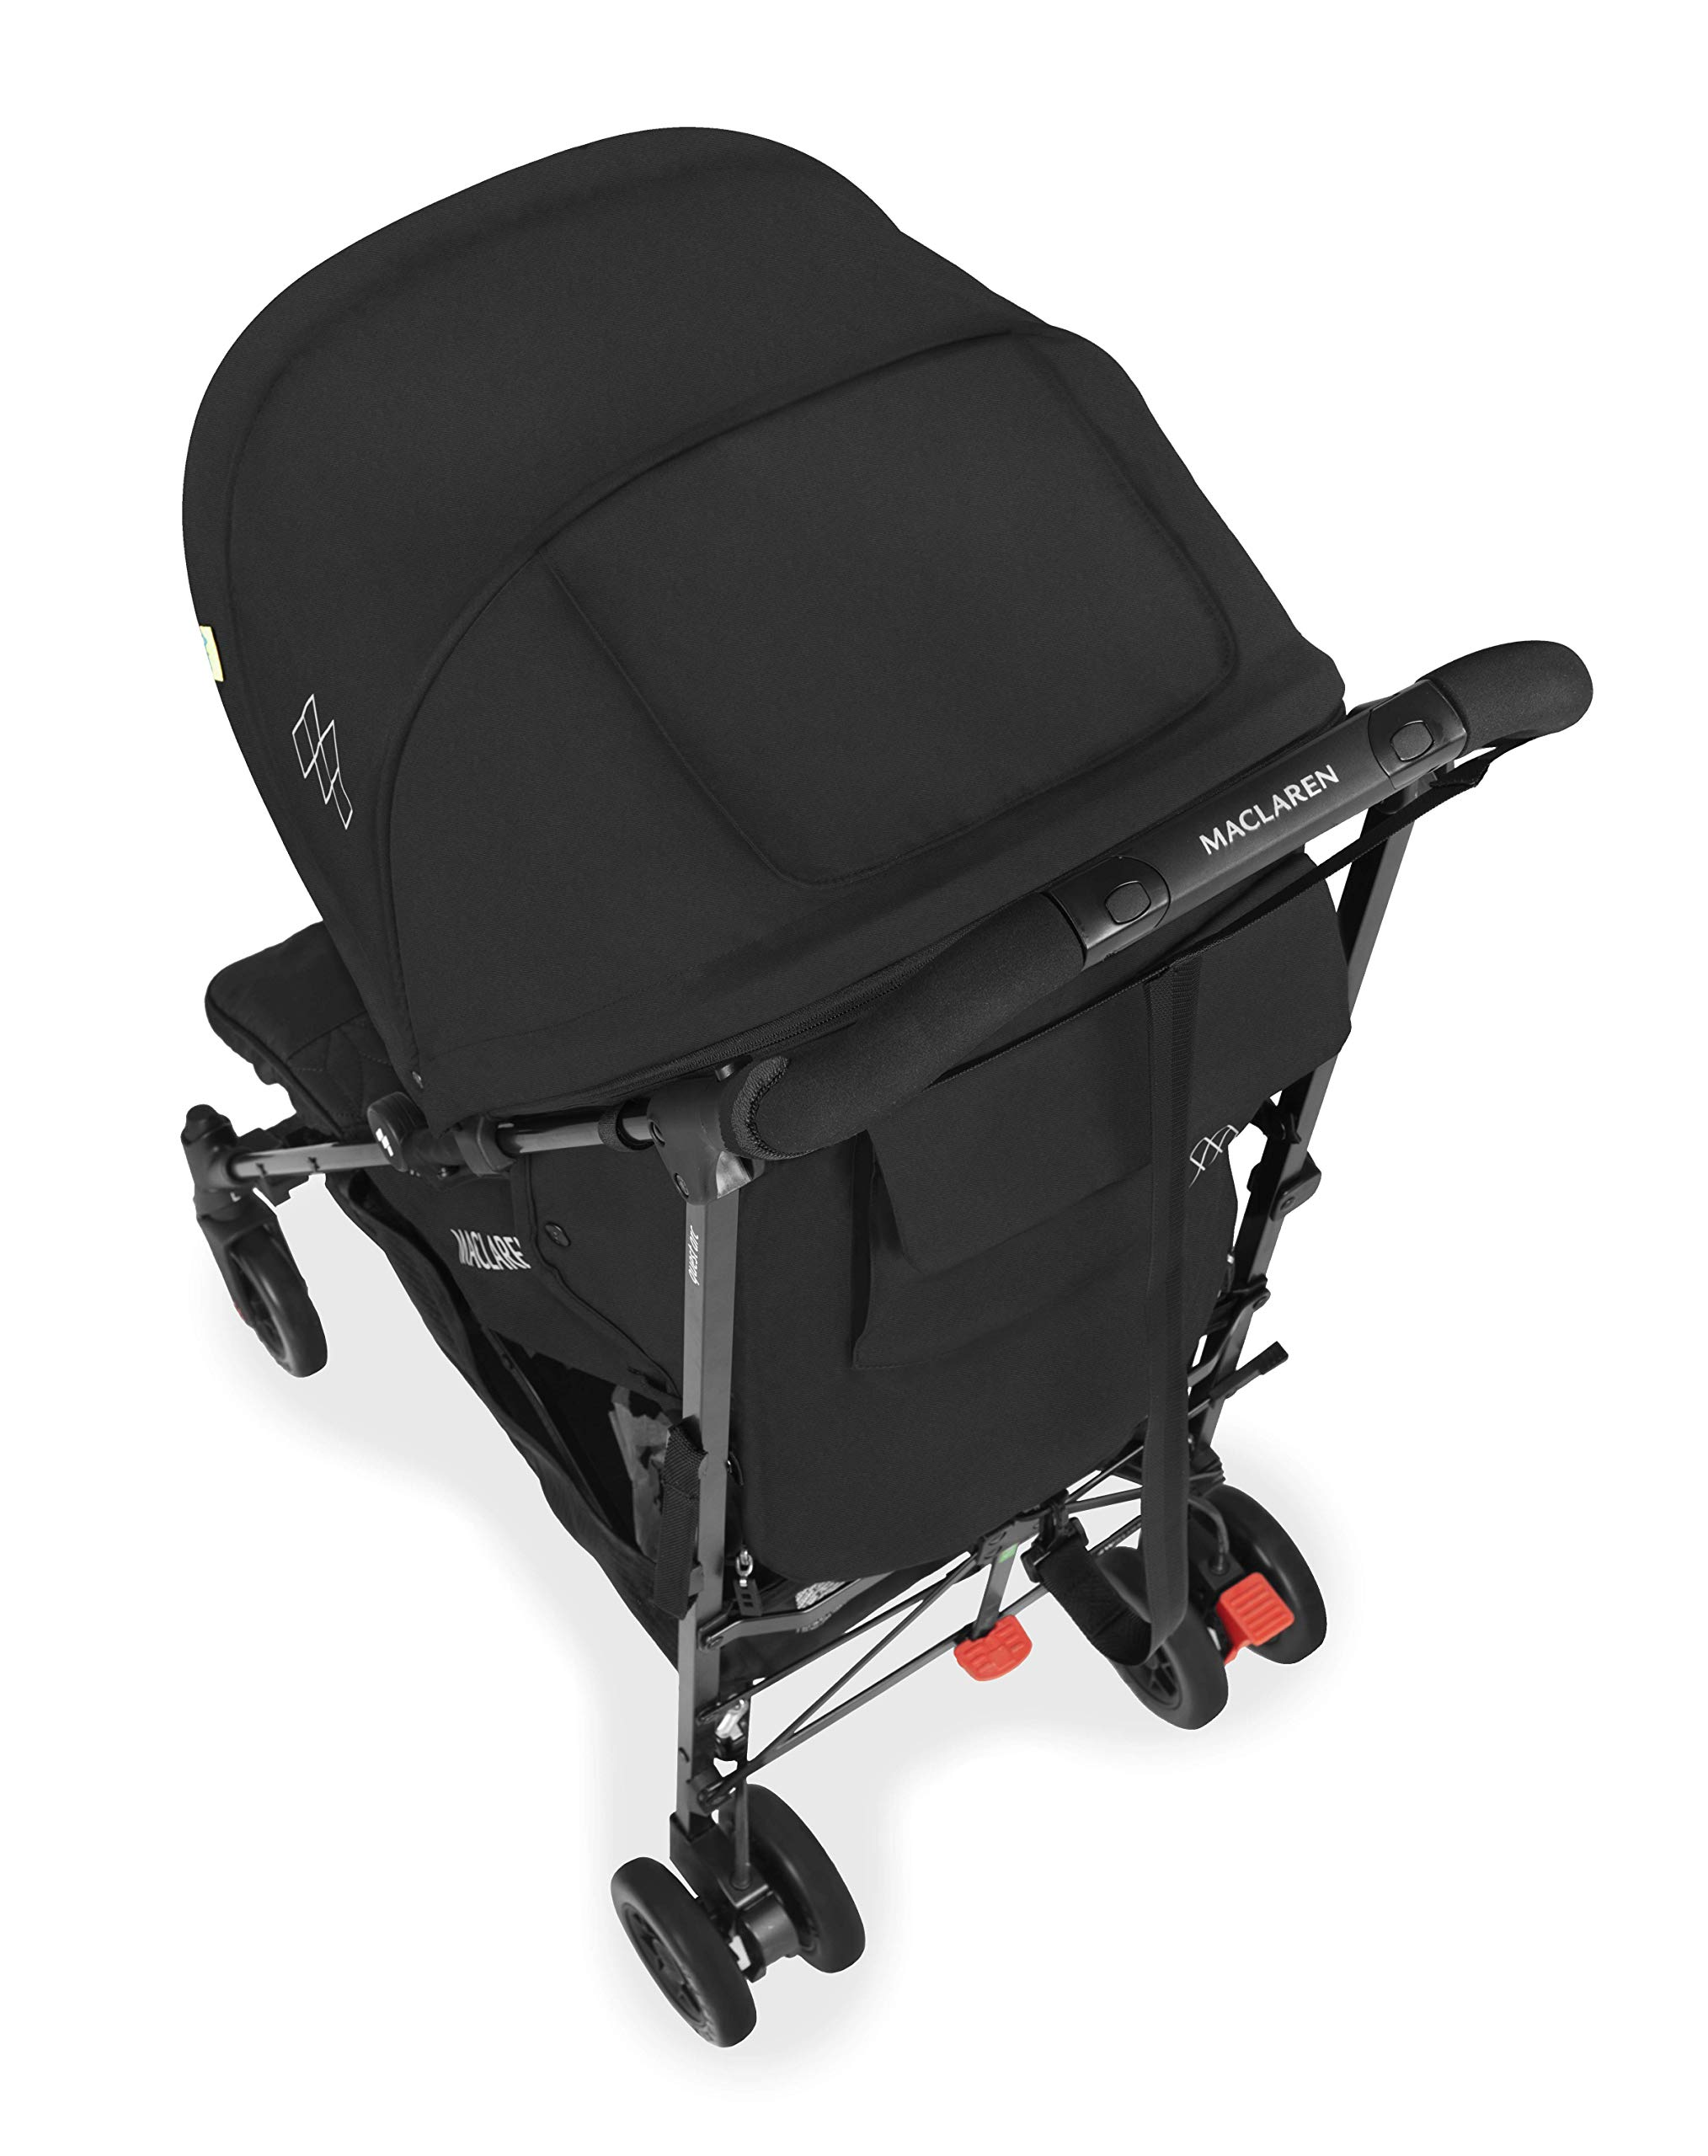 Maclaren Quest Arc Stroller- Ideal for Newborns up to 25kg with extendable UPF 50+/Waterproof Hood, Multi-Position seat and 4-Wheel Suspension. Maclaren Carrycot Compatible. Accessories in The Box Maclaren Lightweight and compact. ideal for newborns and children up to 25kg. you can do it all with one-hand- open, close, push and adjust the seat, footrest and front safety lock Comfy and perfect for travel. the quest arc's padded seat reclines into 4 positions and converts into a new-born safety system. coupled with ultra light flat-free eva tires and all wheel suspension Smart product for active parents. compatible with the maclaren carrycot. all maclaren strollers have waterproof/ upf 50+ hoods to protect from the elements and machine washable seats to keep tidy 5